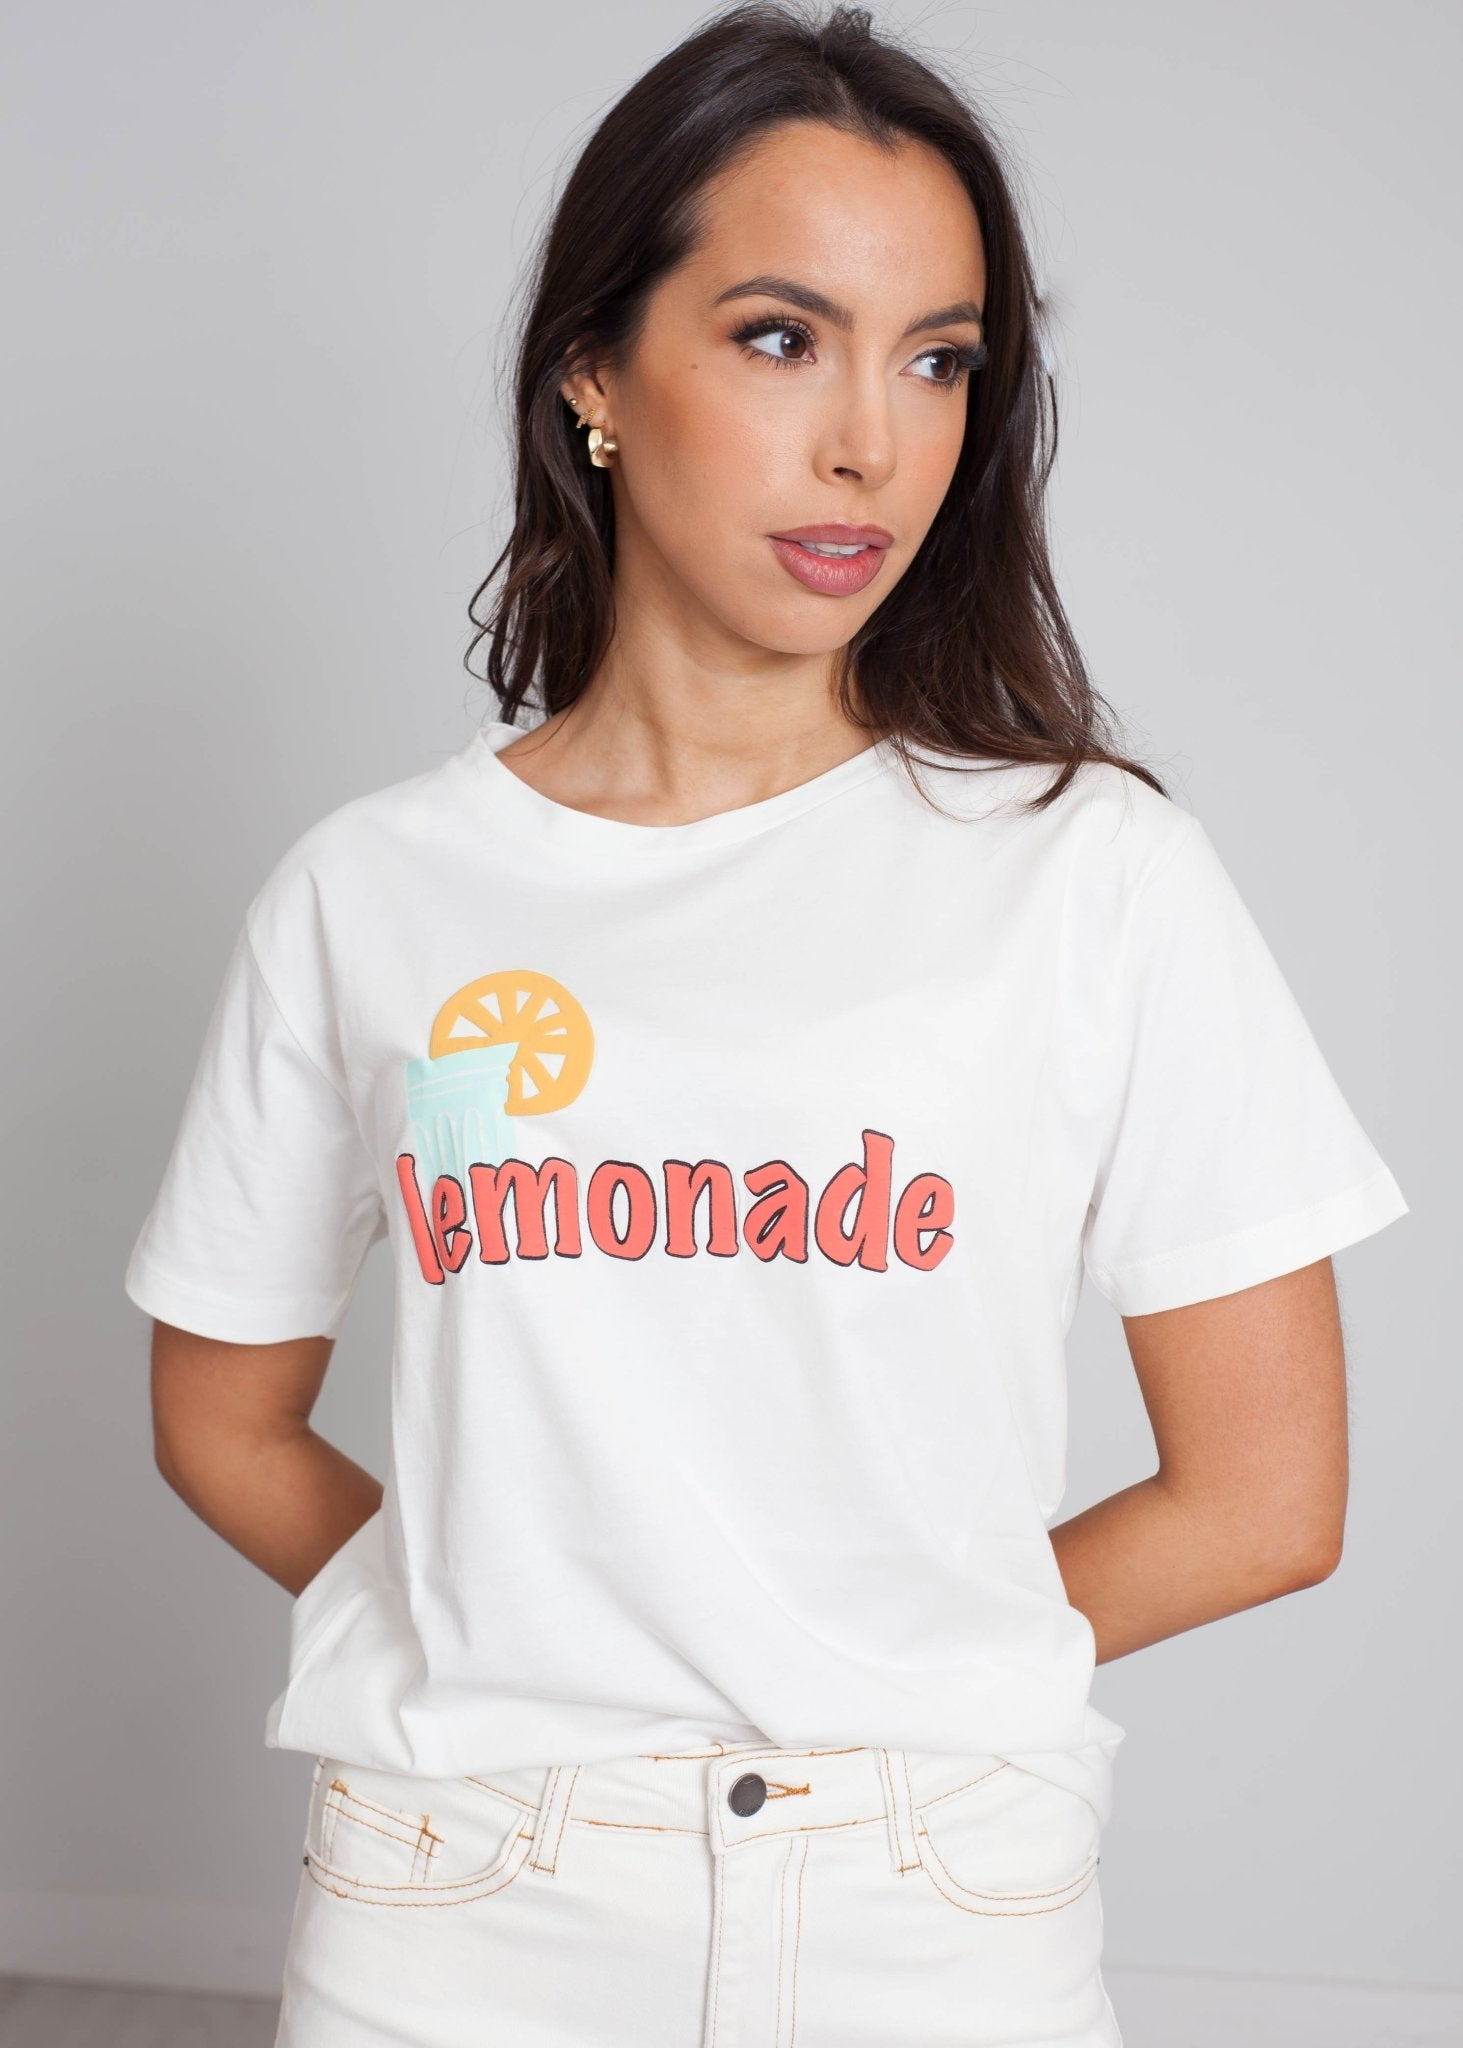 Frankie Lemonade T-Shirt In Cream - The Walk in Wardrobe